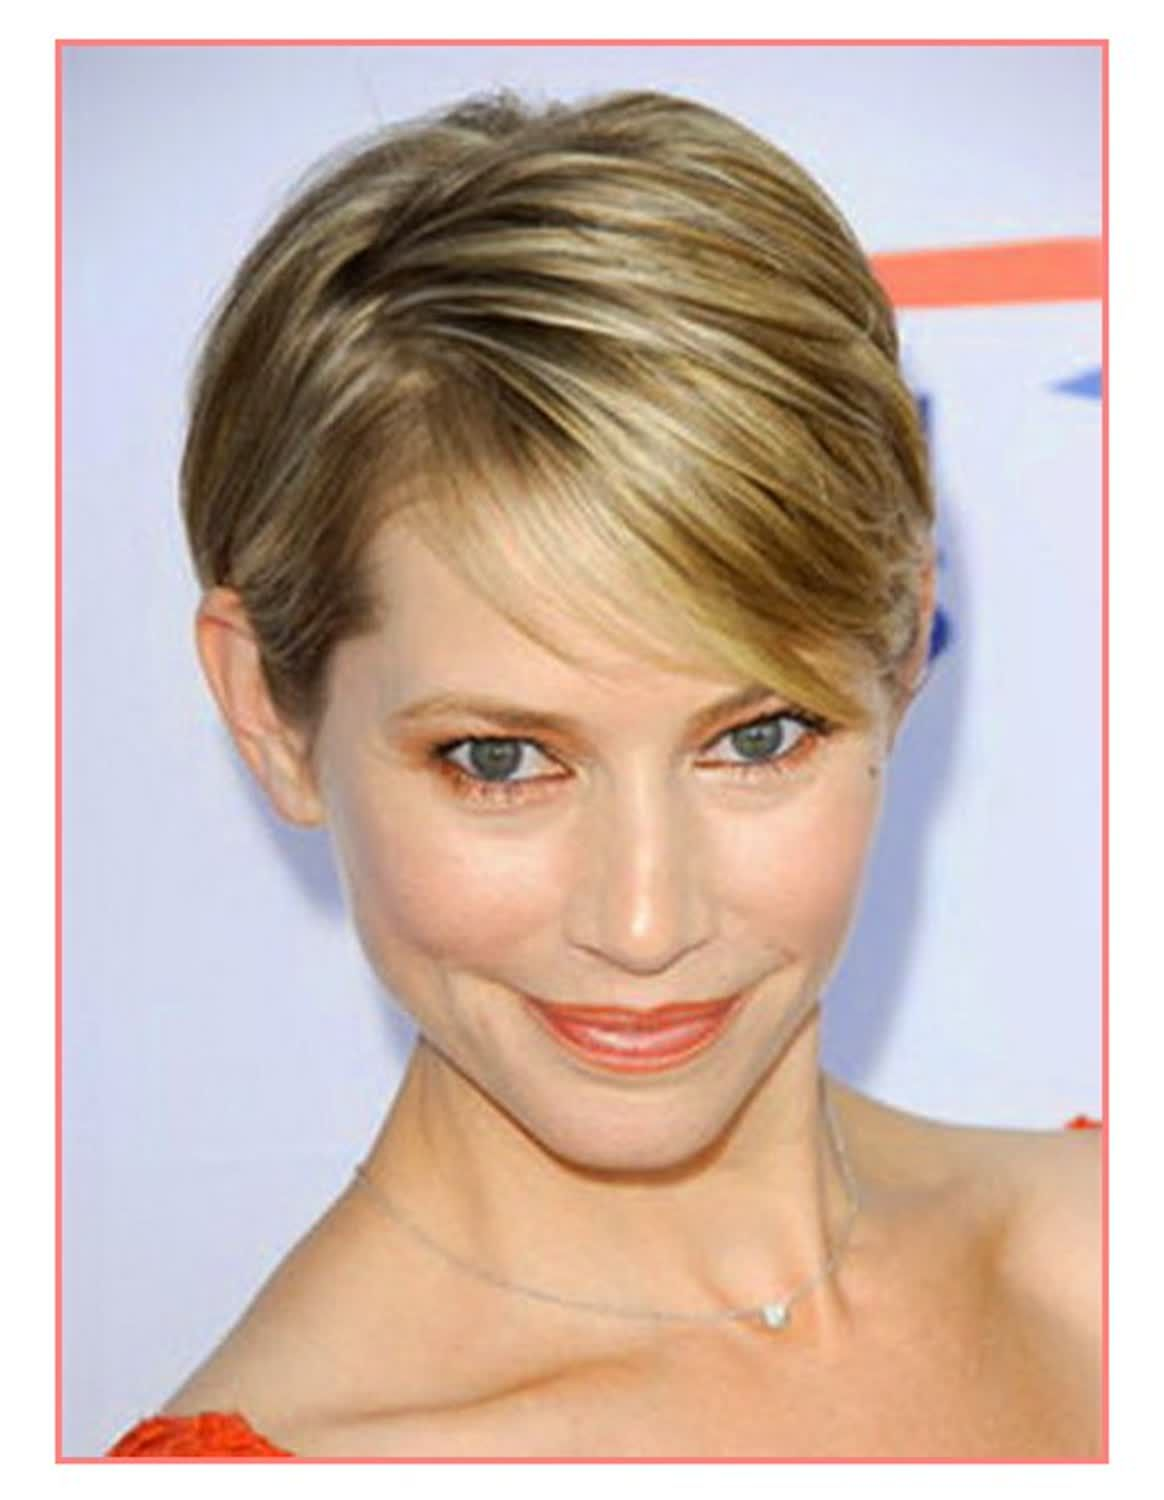 Best Short Hairstyles For Fine Thin Hair The Haircuts Womens Short Hairstyles For Fine Thin Hair Best Drop Gorgeous And Long Over Pictures Hairstyle Round Top B Short Thin Hair Short